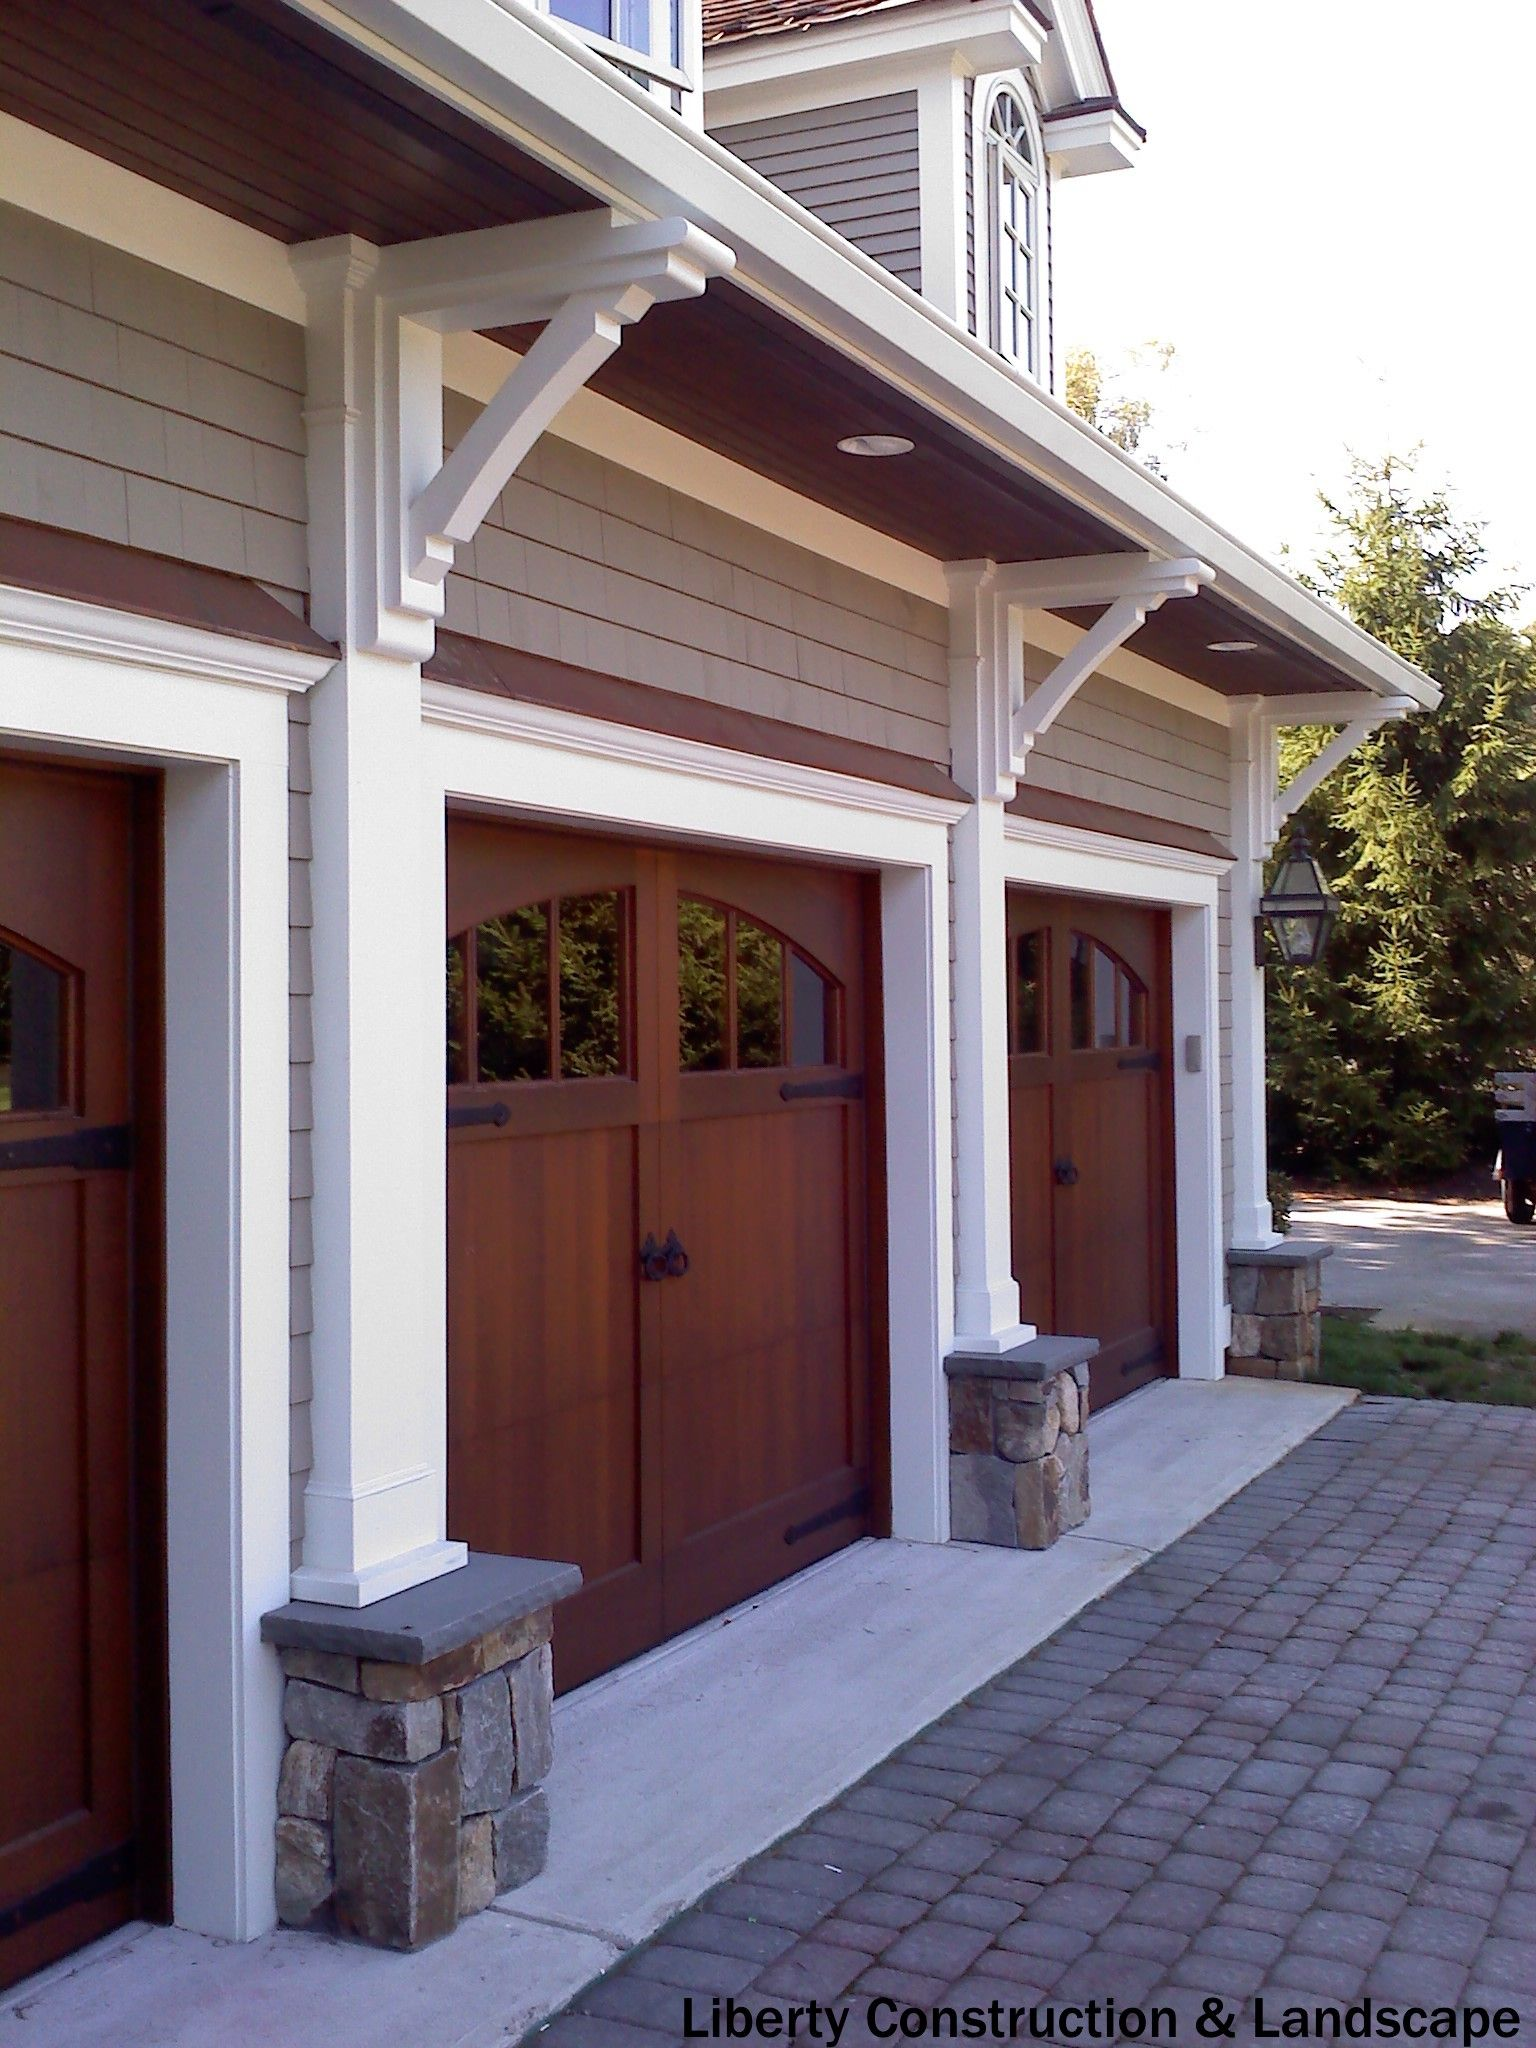 Insulated 2 car garage door cost - Rustic 3 Car Garage With Half Rounded Windows Above The Average Price To Install